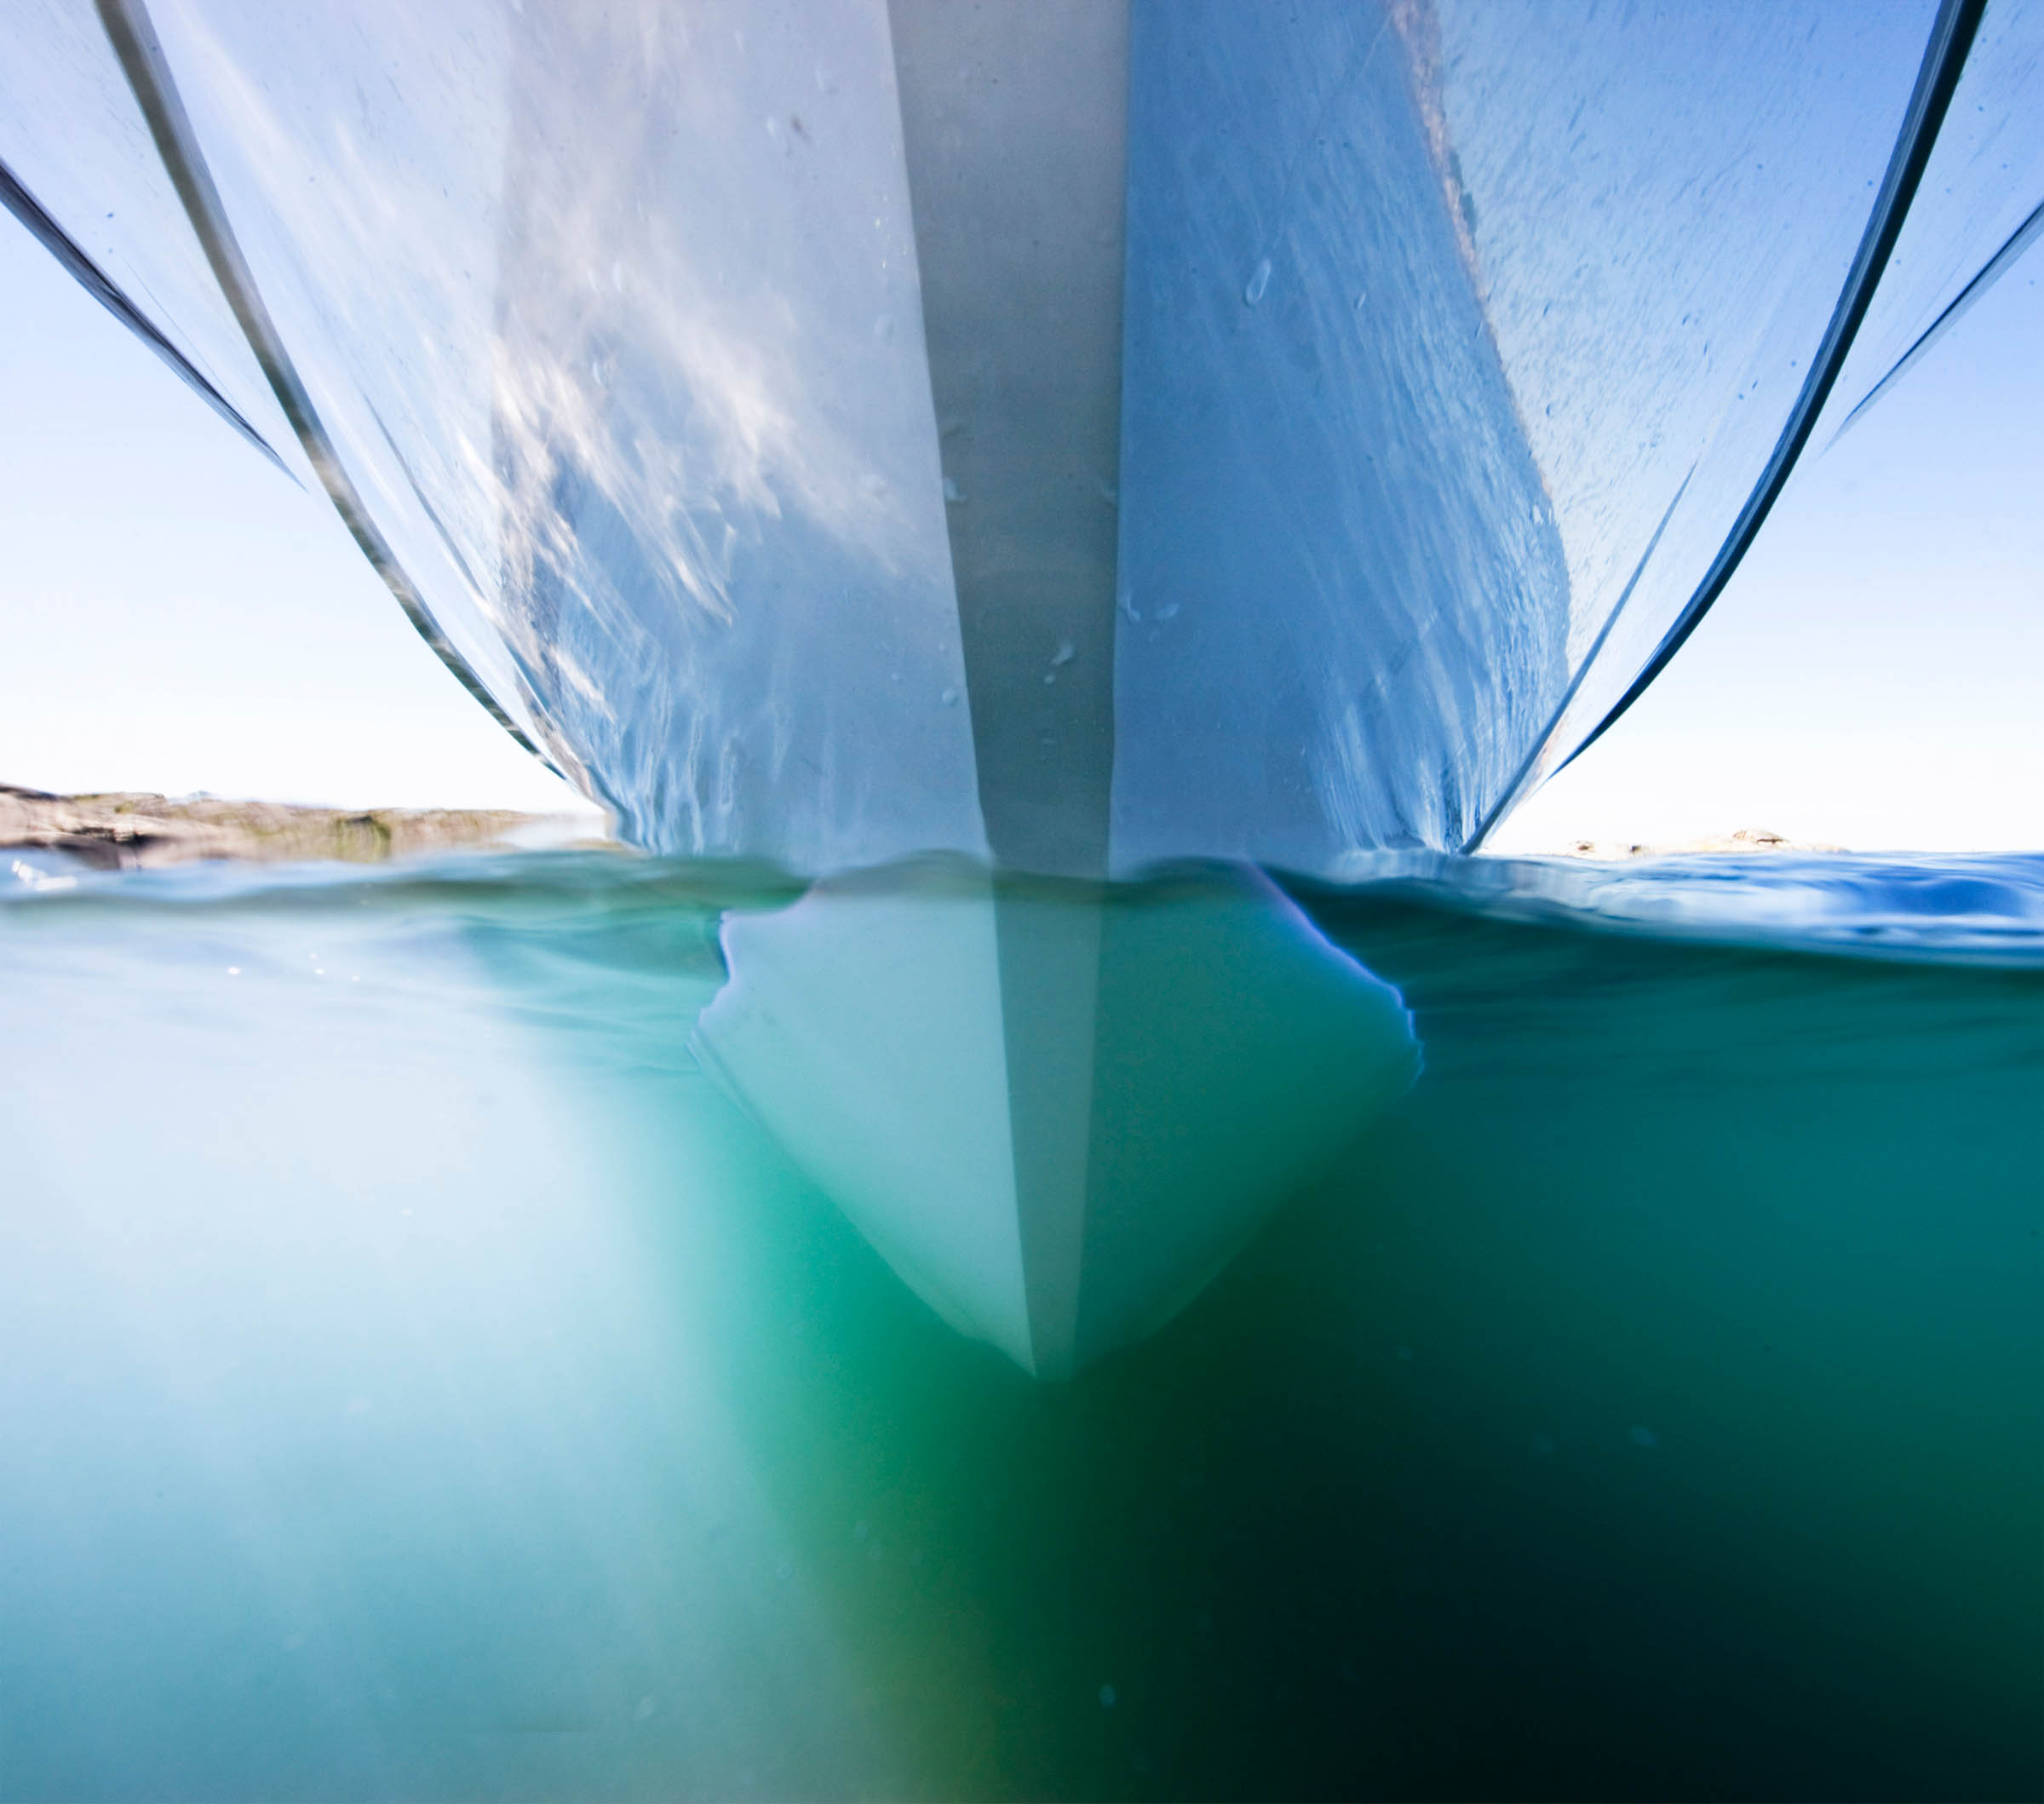 Below the front of a Paragon motorboat